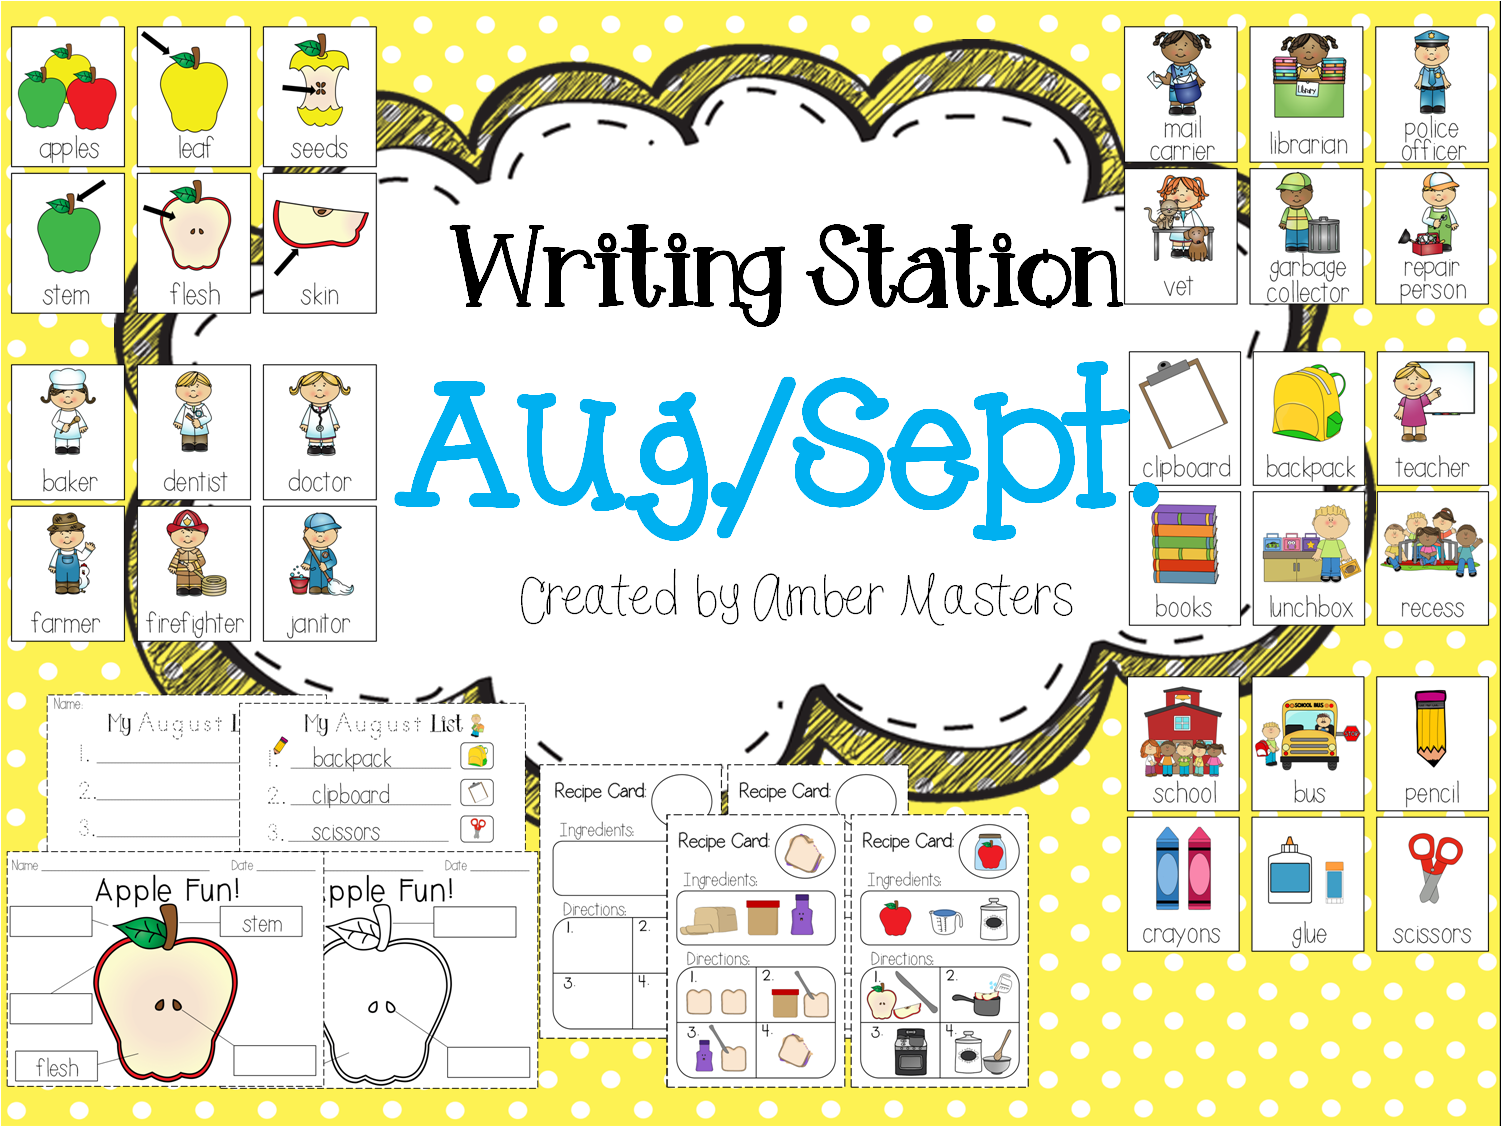 http://www.teacherspayteachers.com/Product/August-September-Writing-Station-1346988